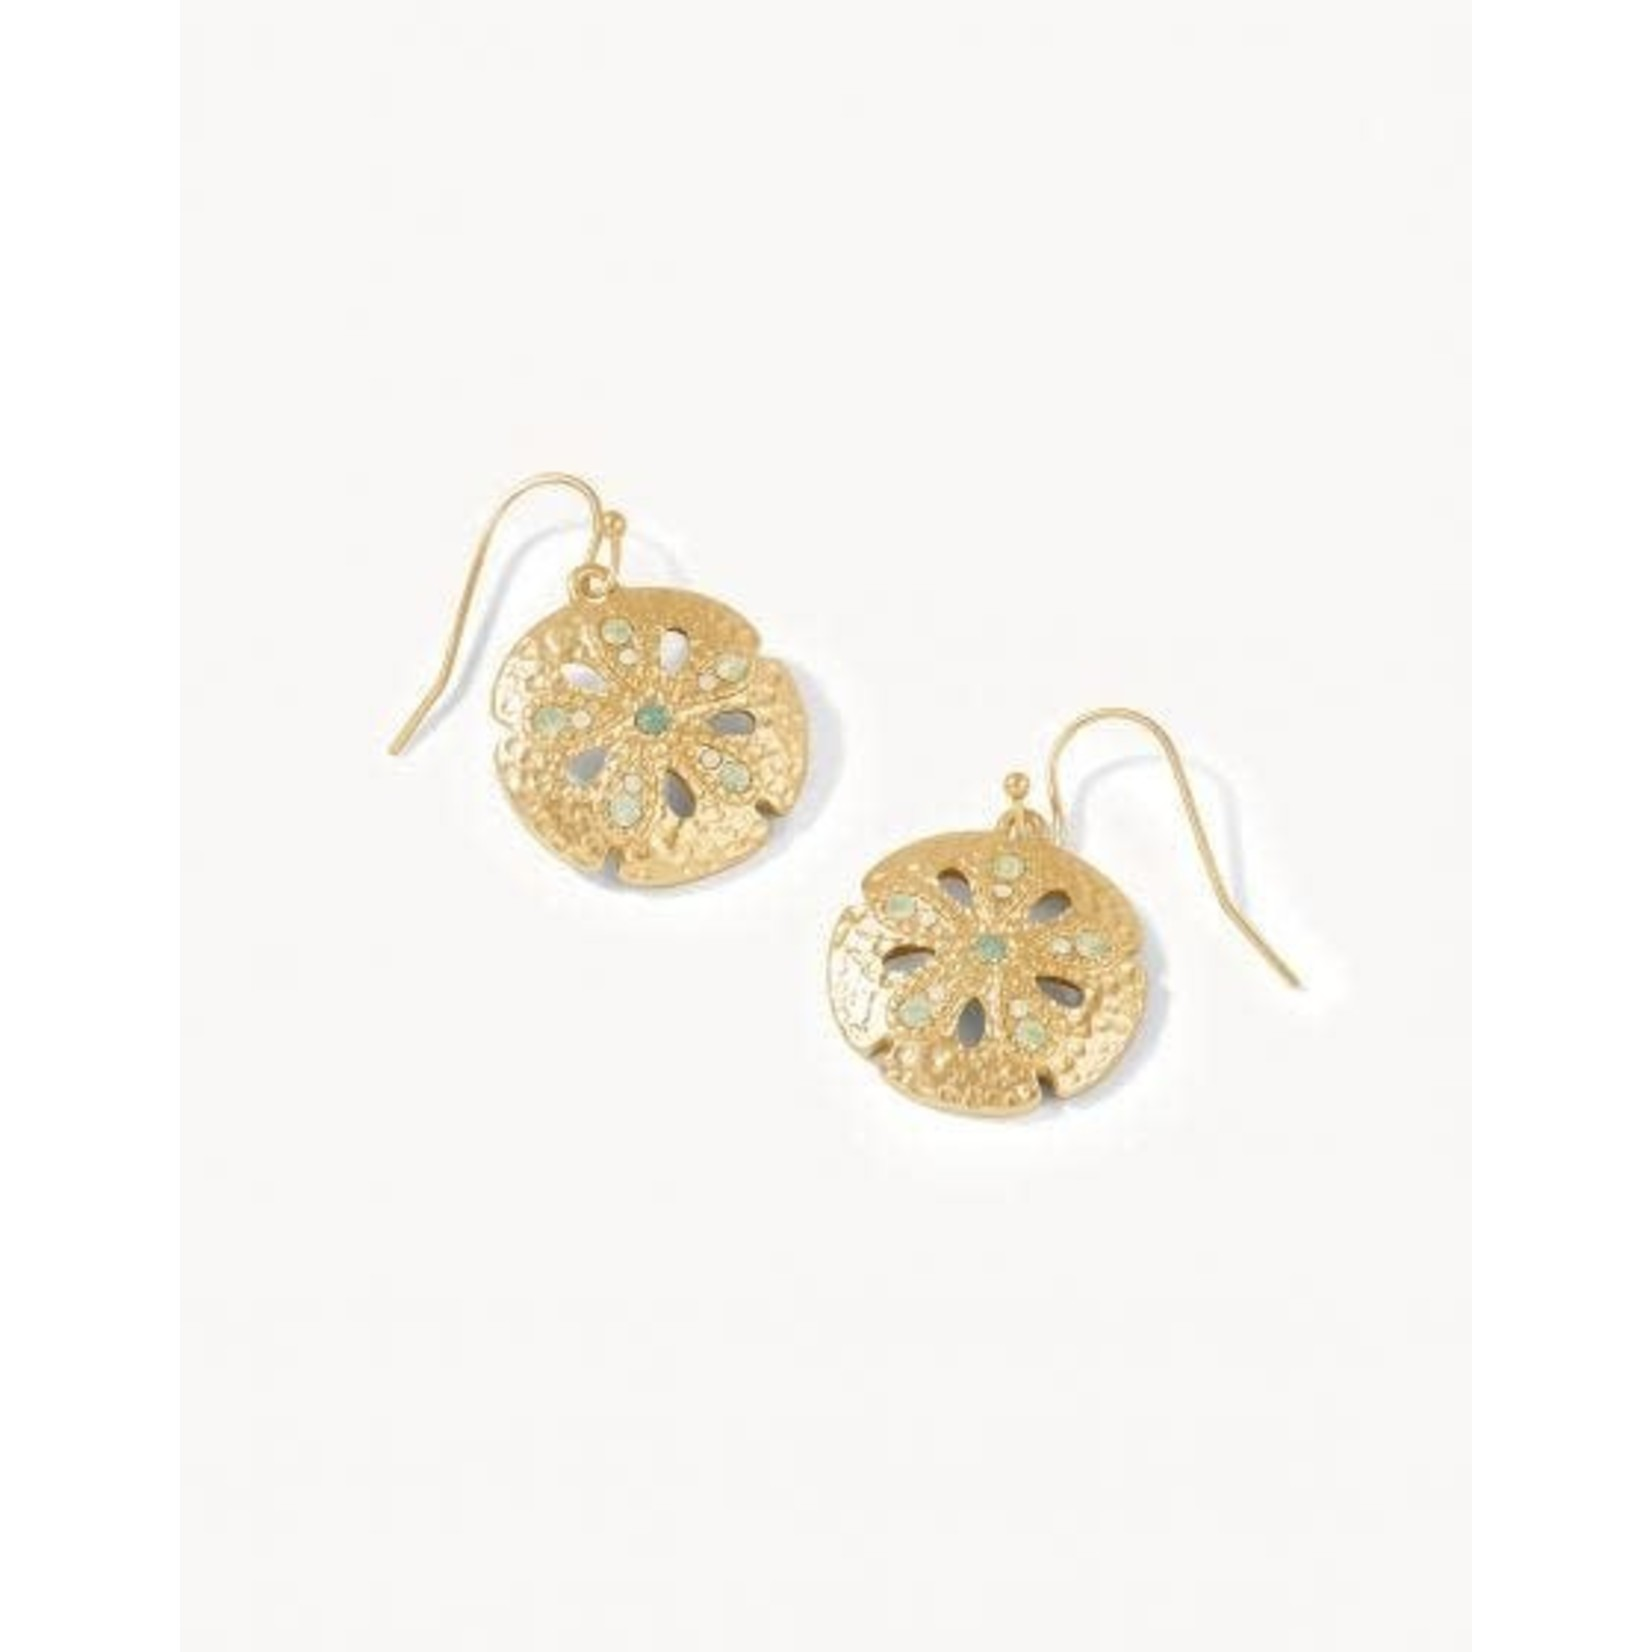 Spartina Earrings/Sand Dollar/Gold & Opal